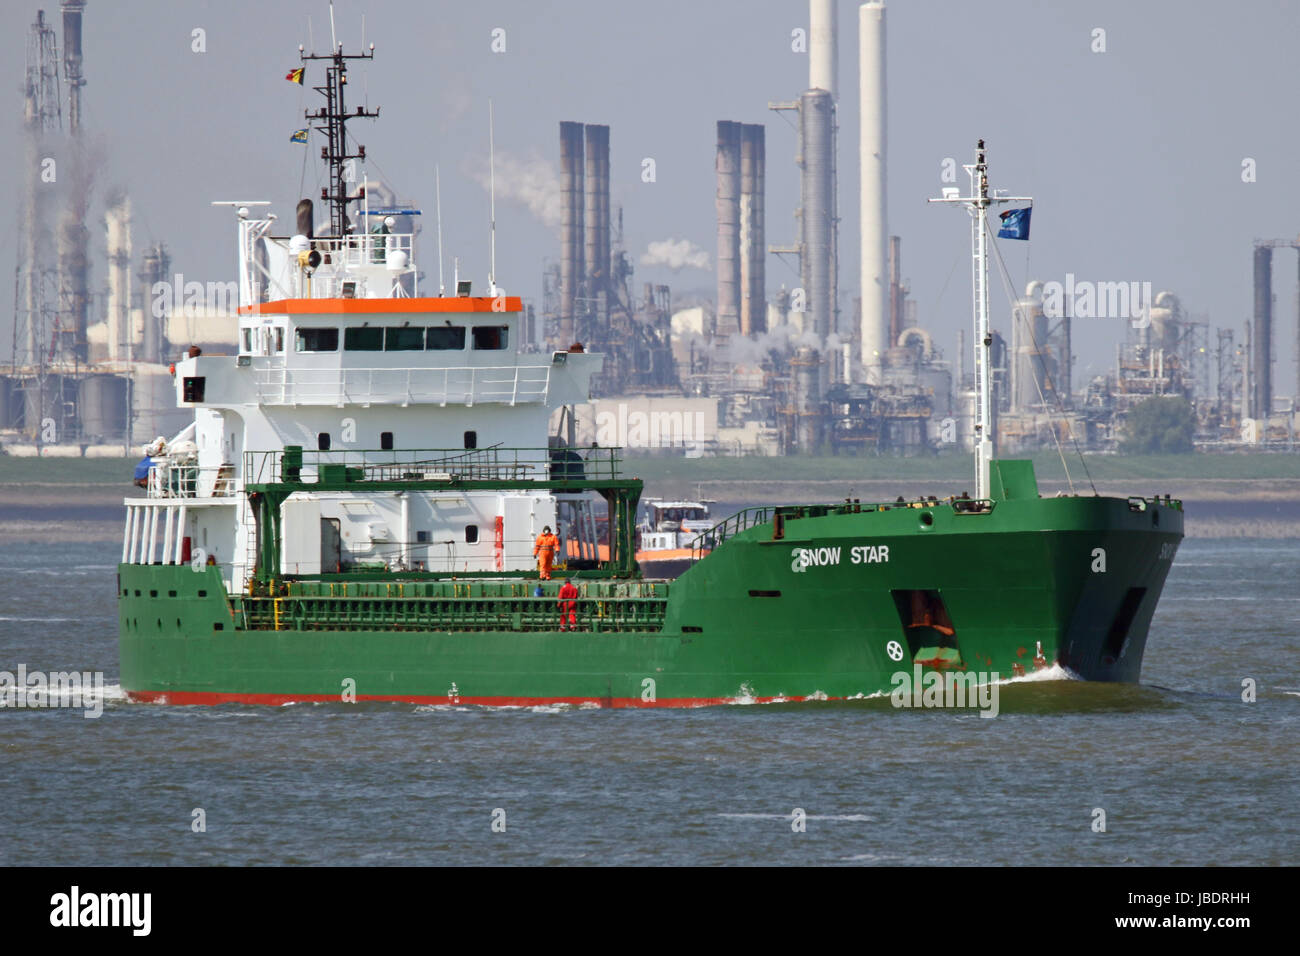 The general cargo ship Snow Star on the schelde river passing Terneuzen on the way to the port of Antwerp - Stock Image